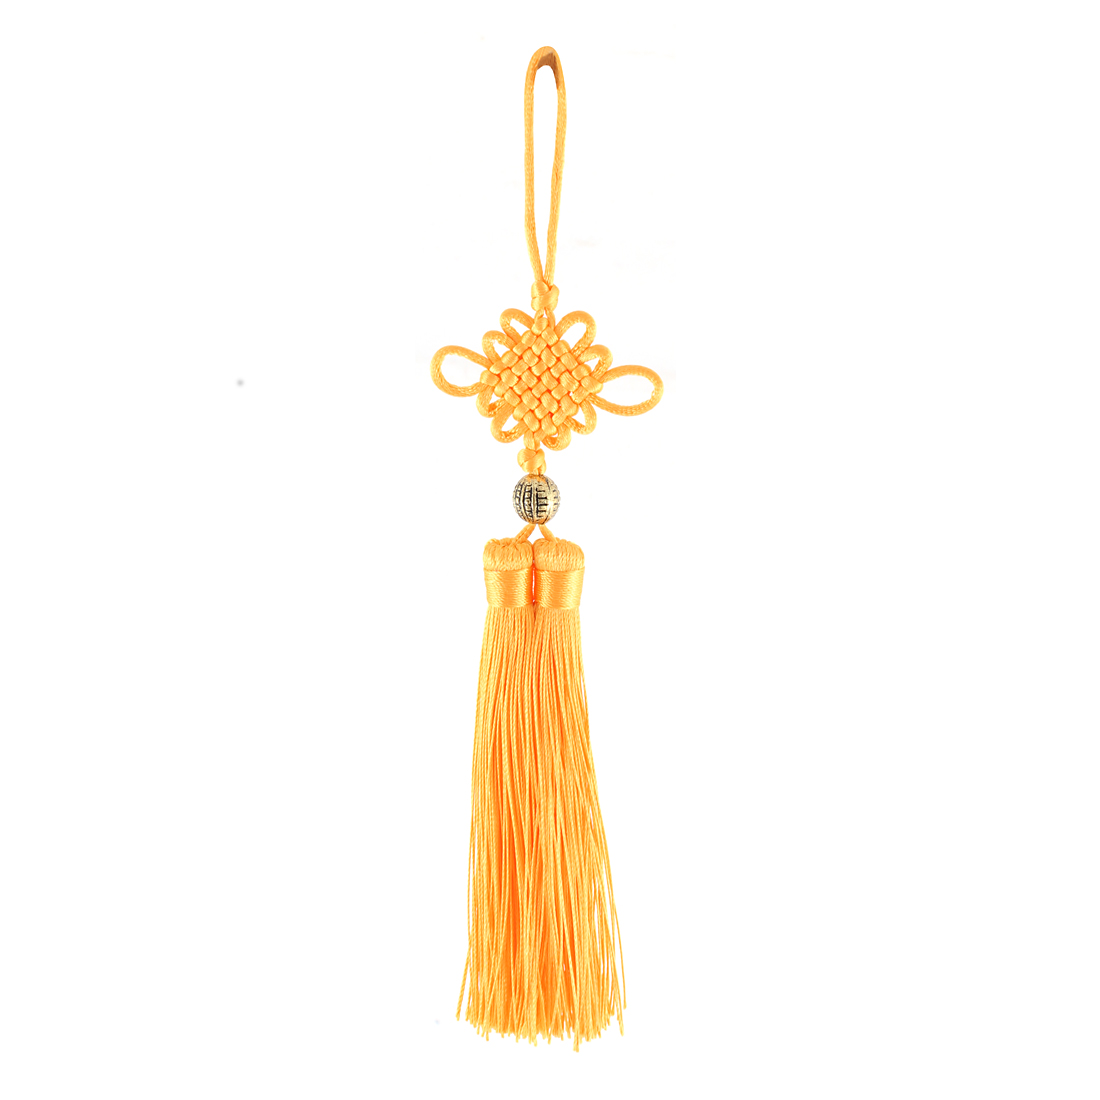 Yellow Nylon Braid Tassel Decor Chinese Knot Hanging Ornament